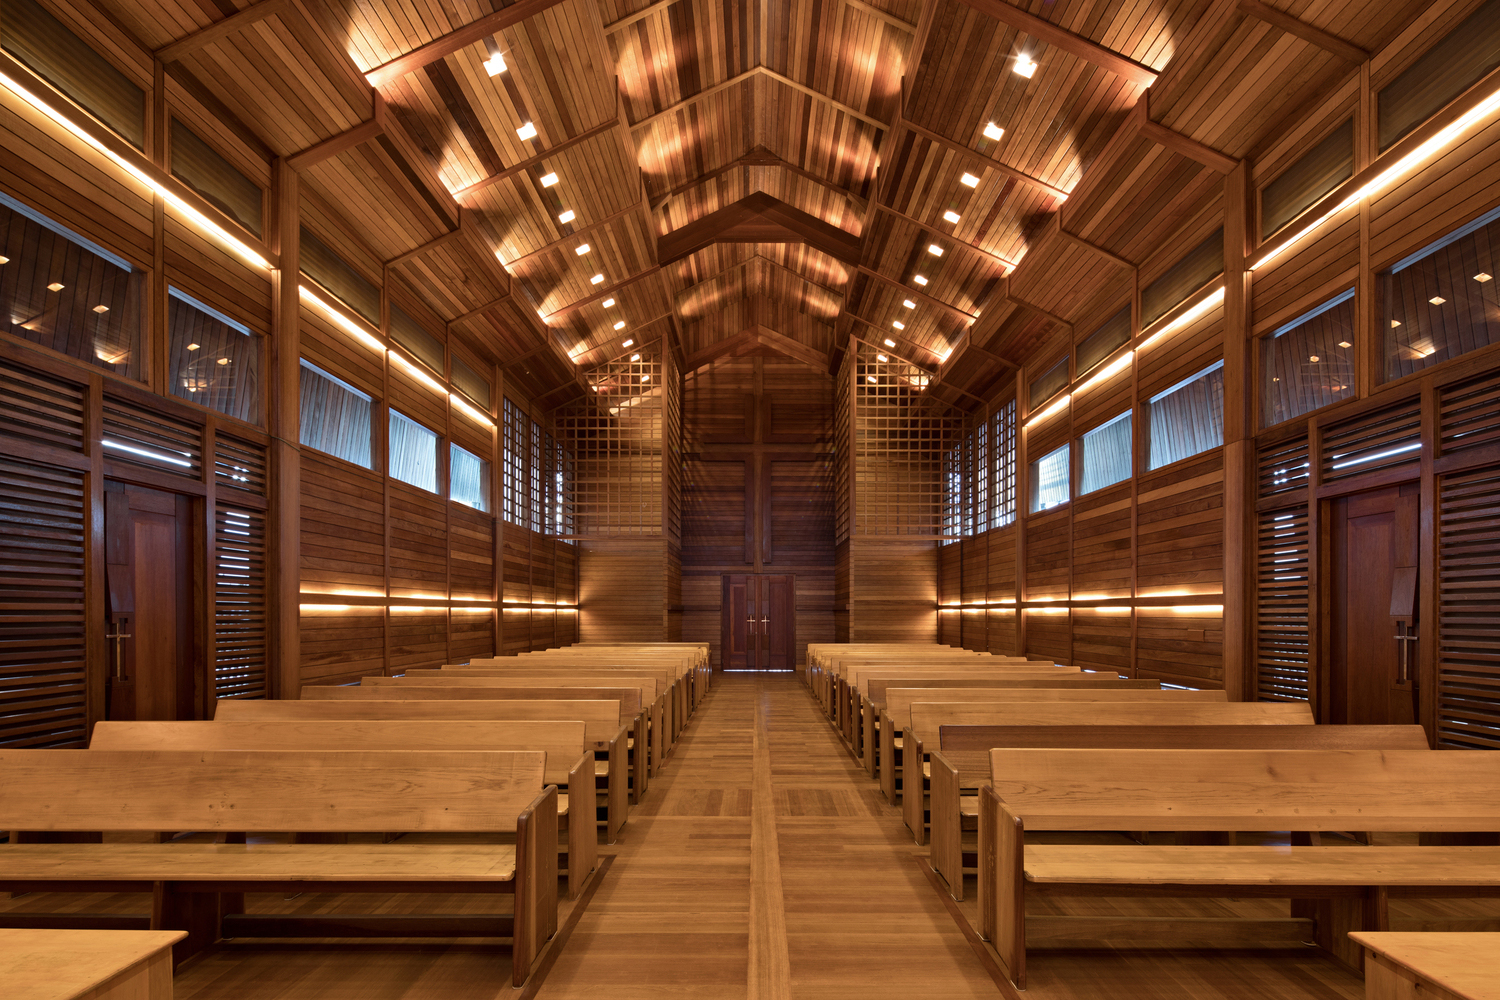 Two Recycled Woods are Engineered into a Modest, Airy Church in Indonesia